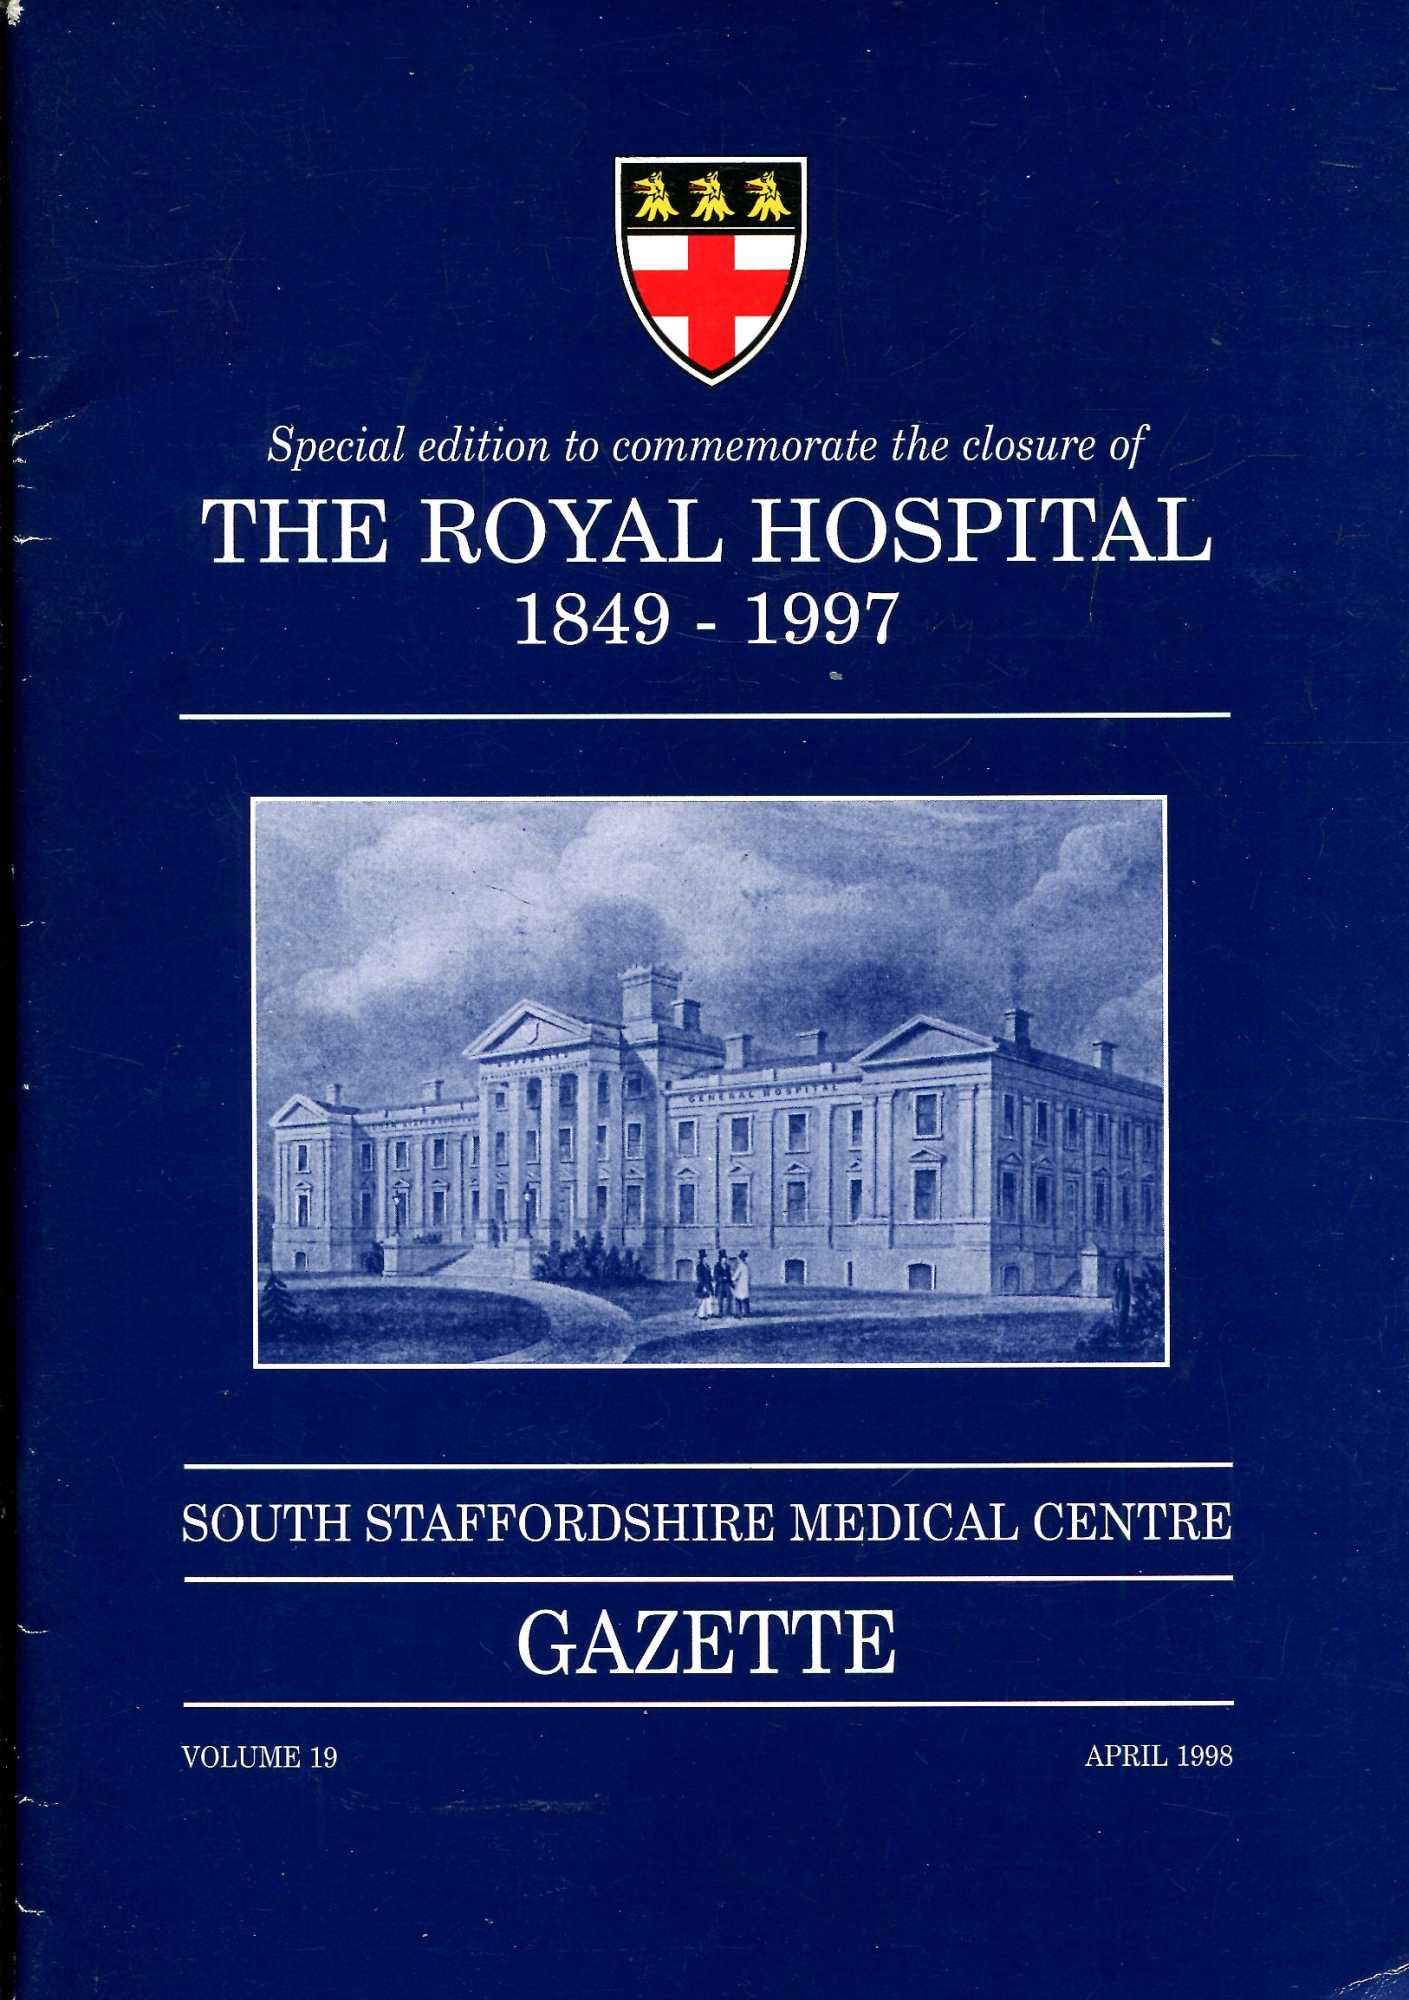 Image for South Staffordshire Medical centre Gazette volume 19, April 1998 : The Closure of the Royal Hospital 1849-1997